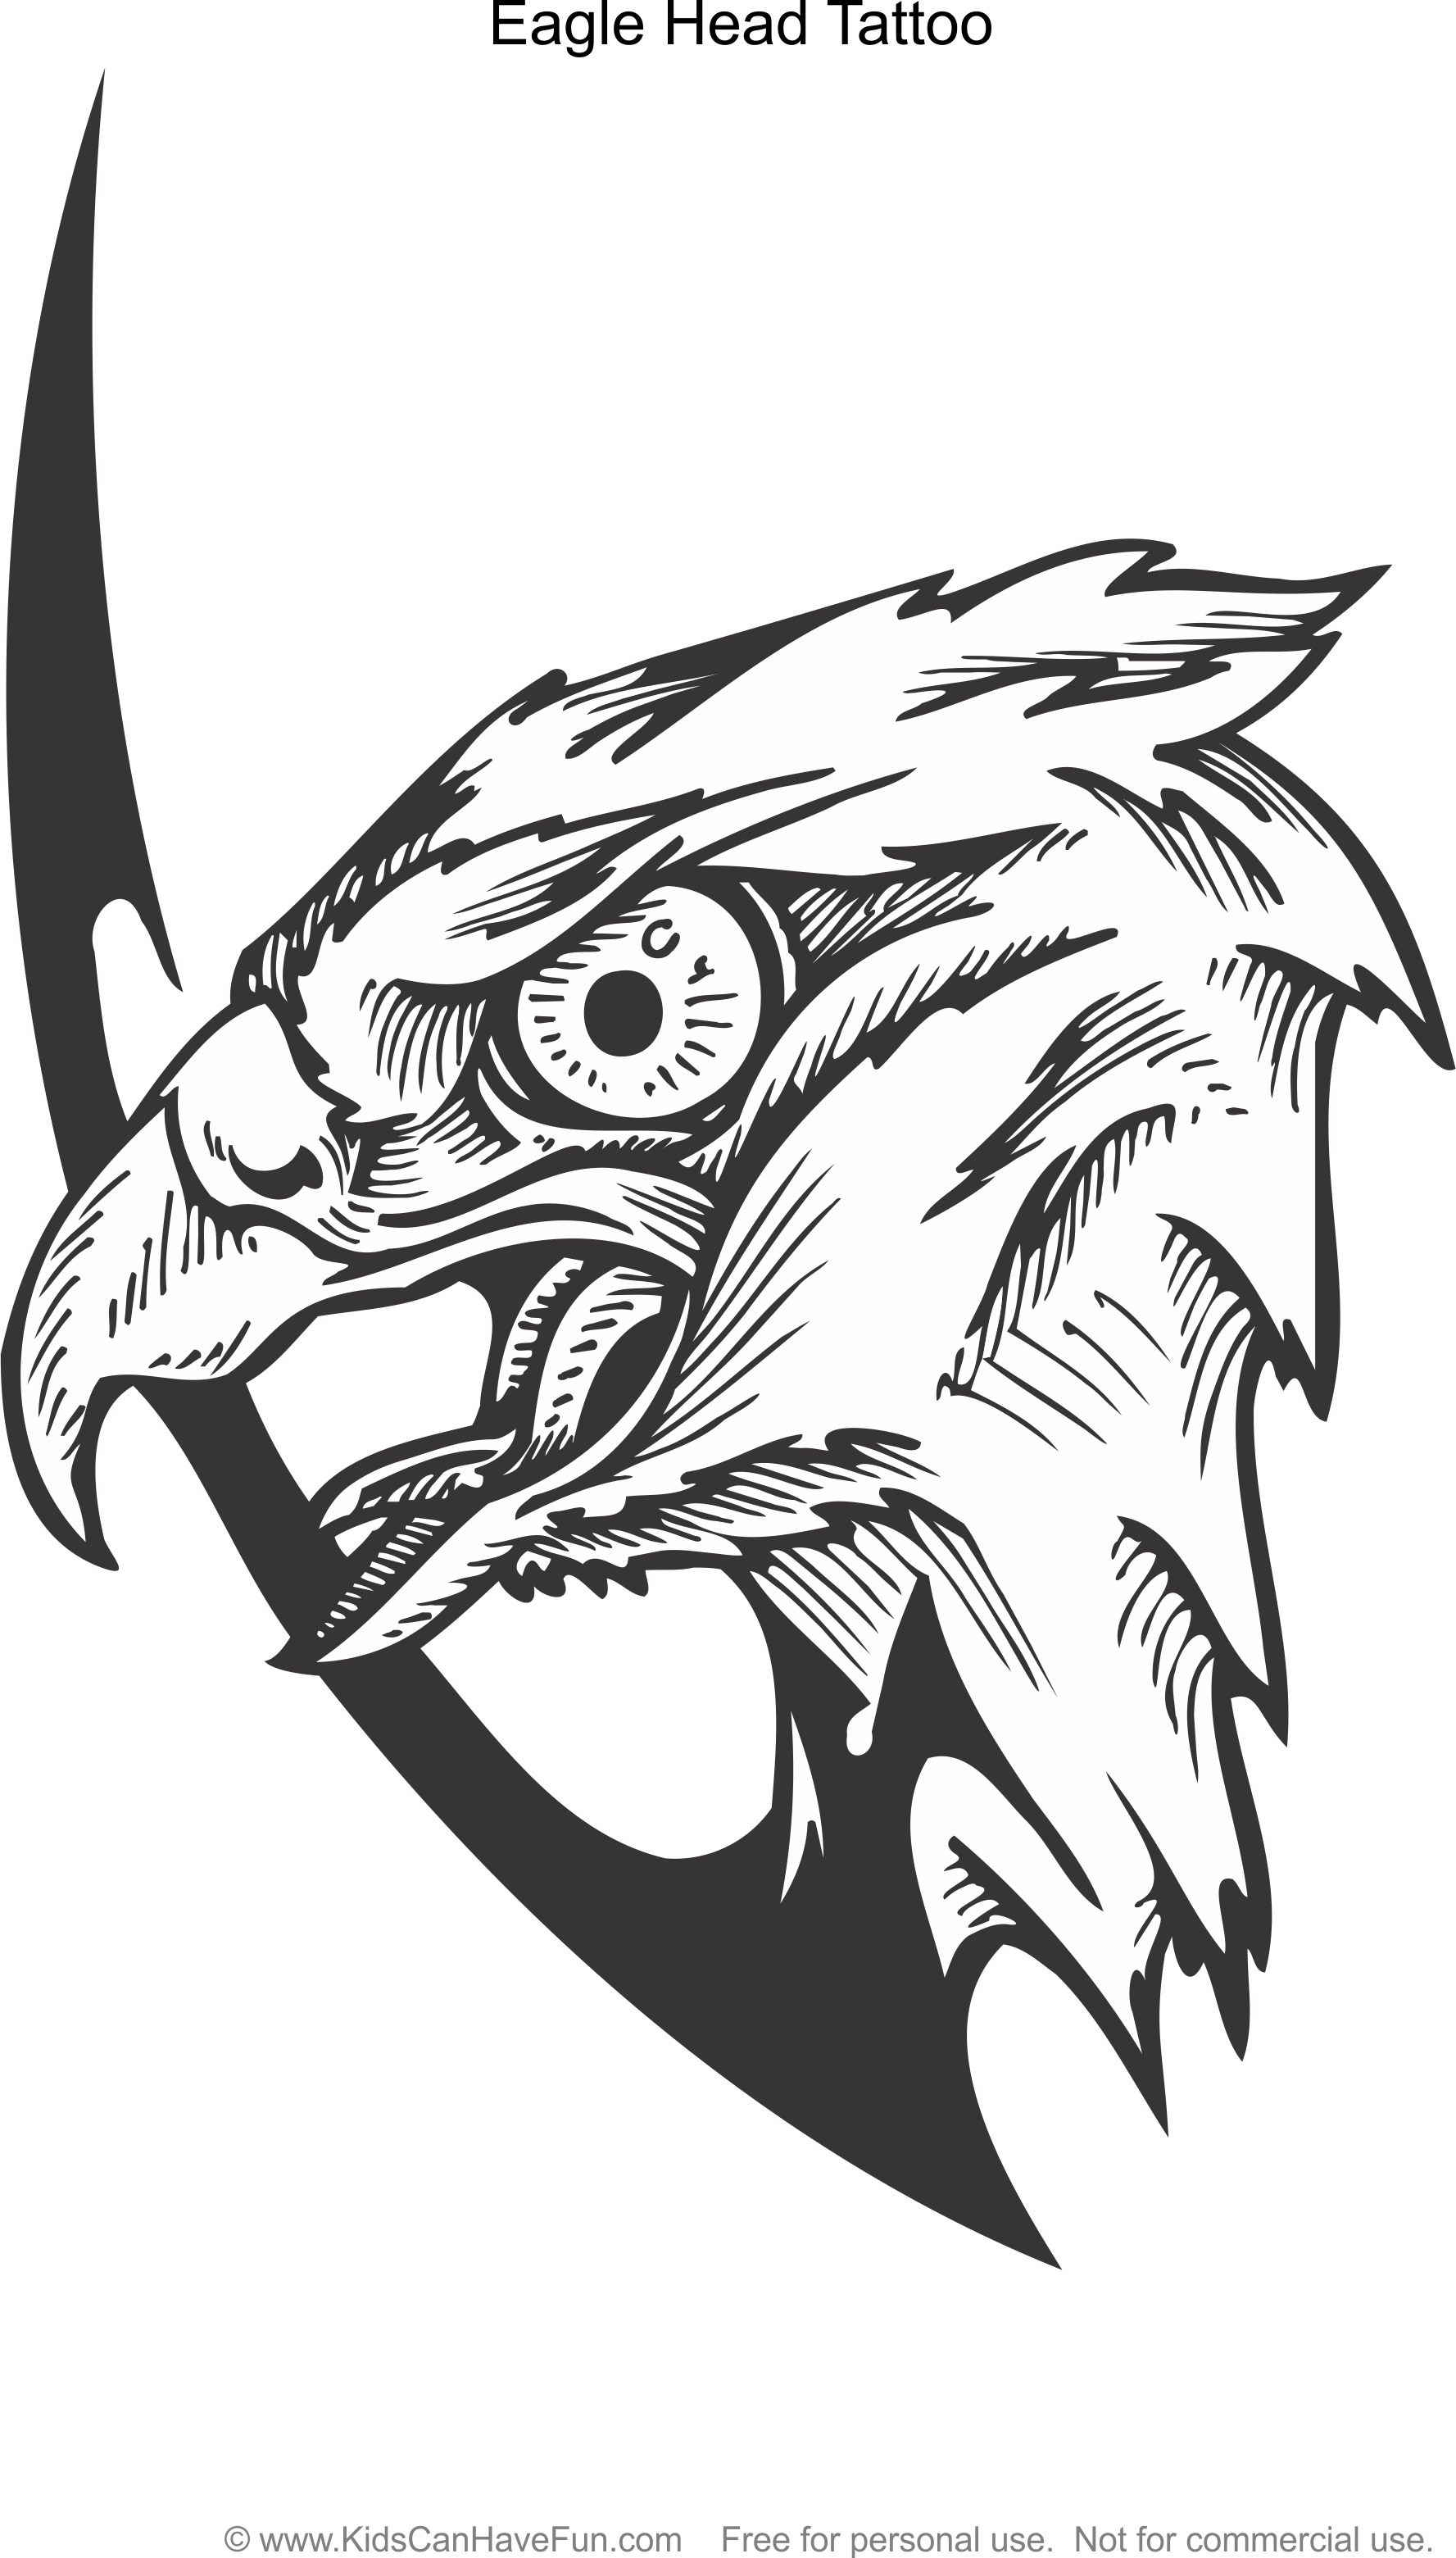 Eagle Head Tattoo Coloring Page Http Www Kidscanhavefun Com Tattoo Coloring Htm Eagle Tattoo Color Color Tattoo Eagle Head Tattoo Coloring Pages